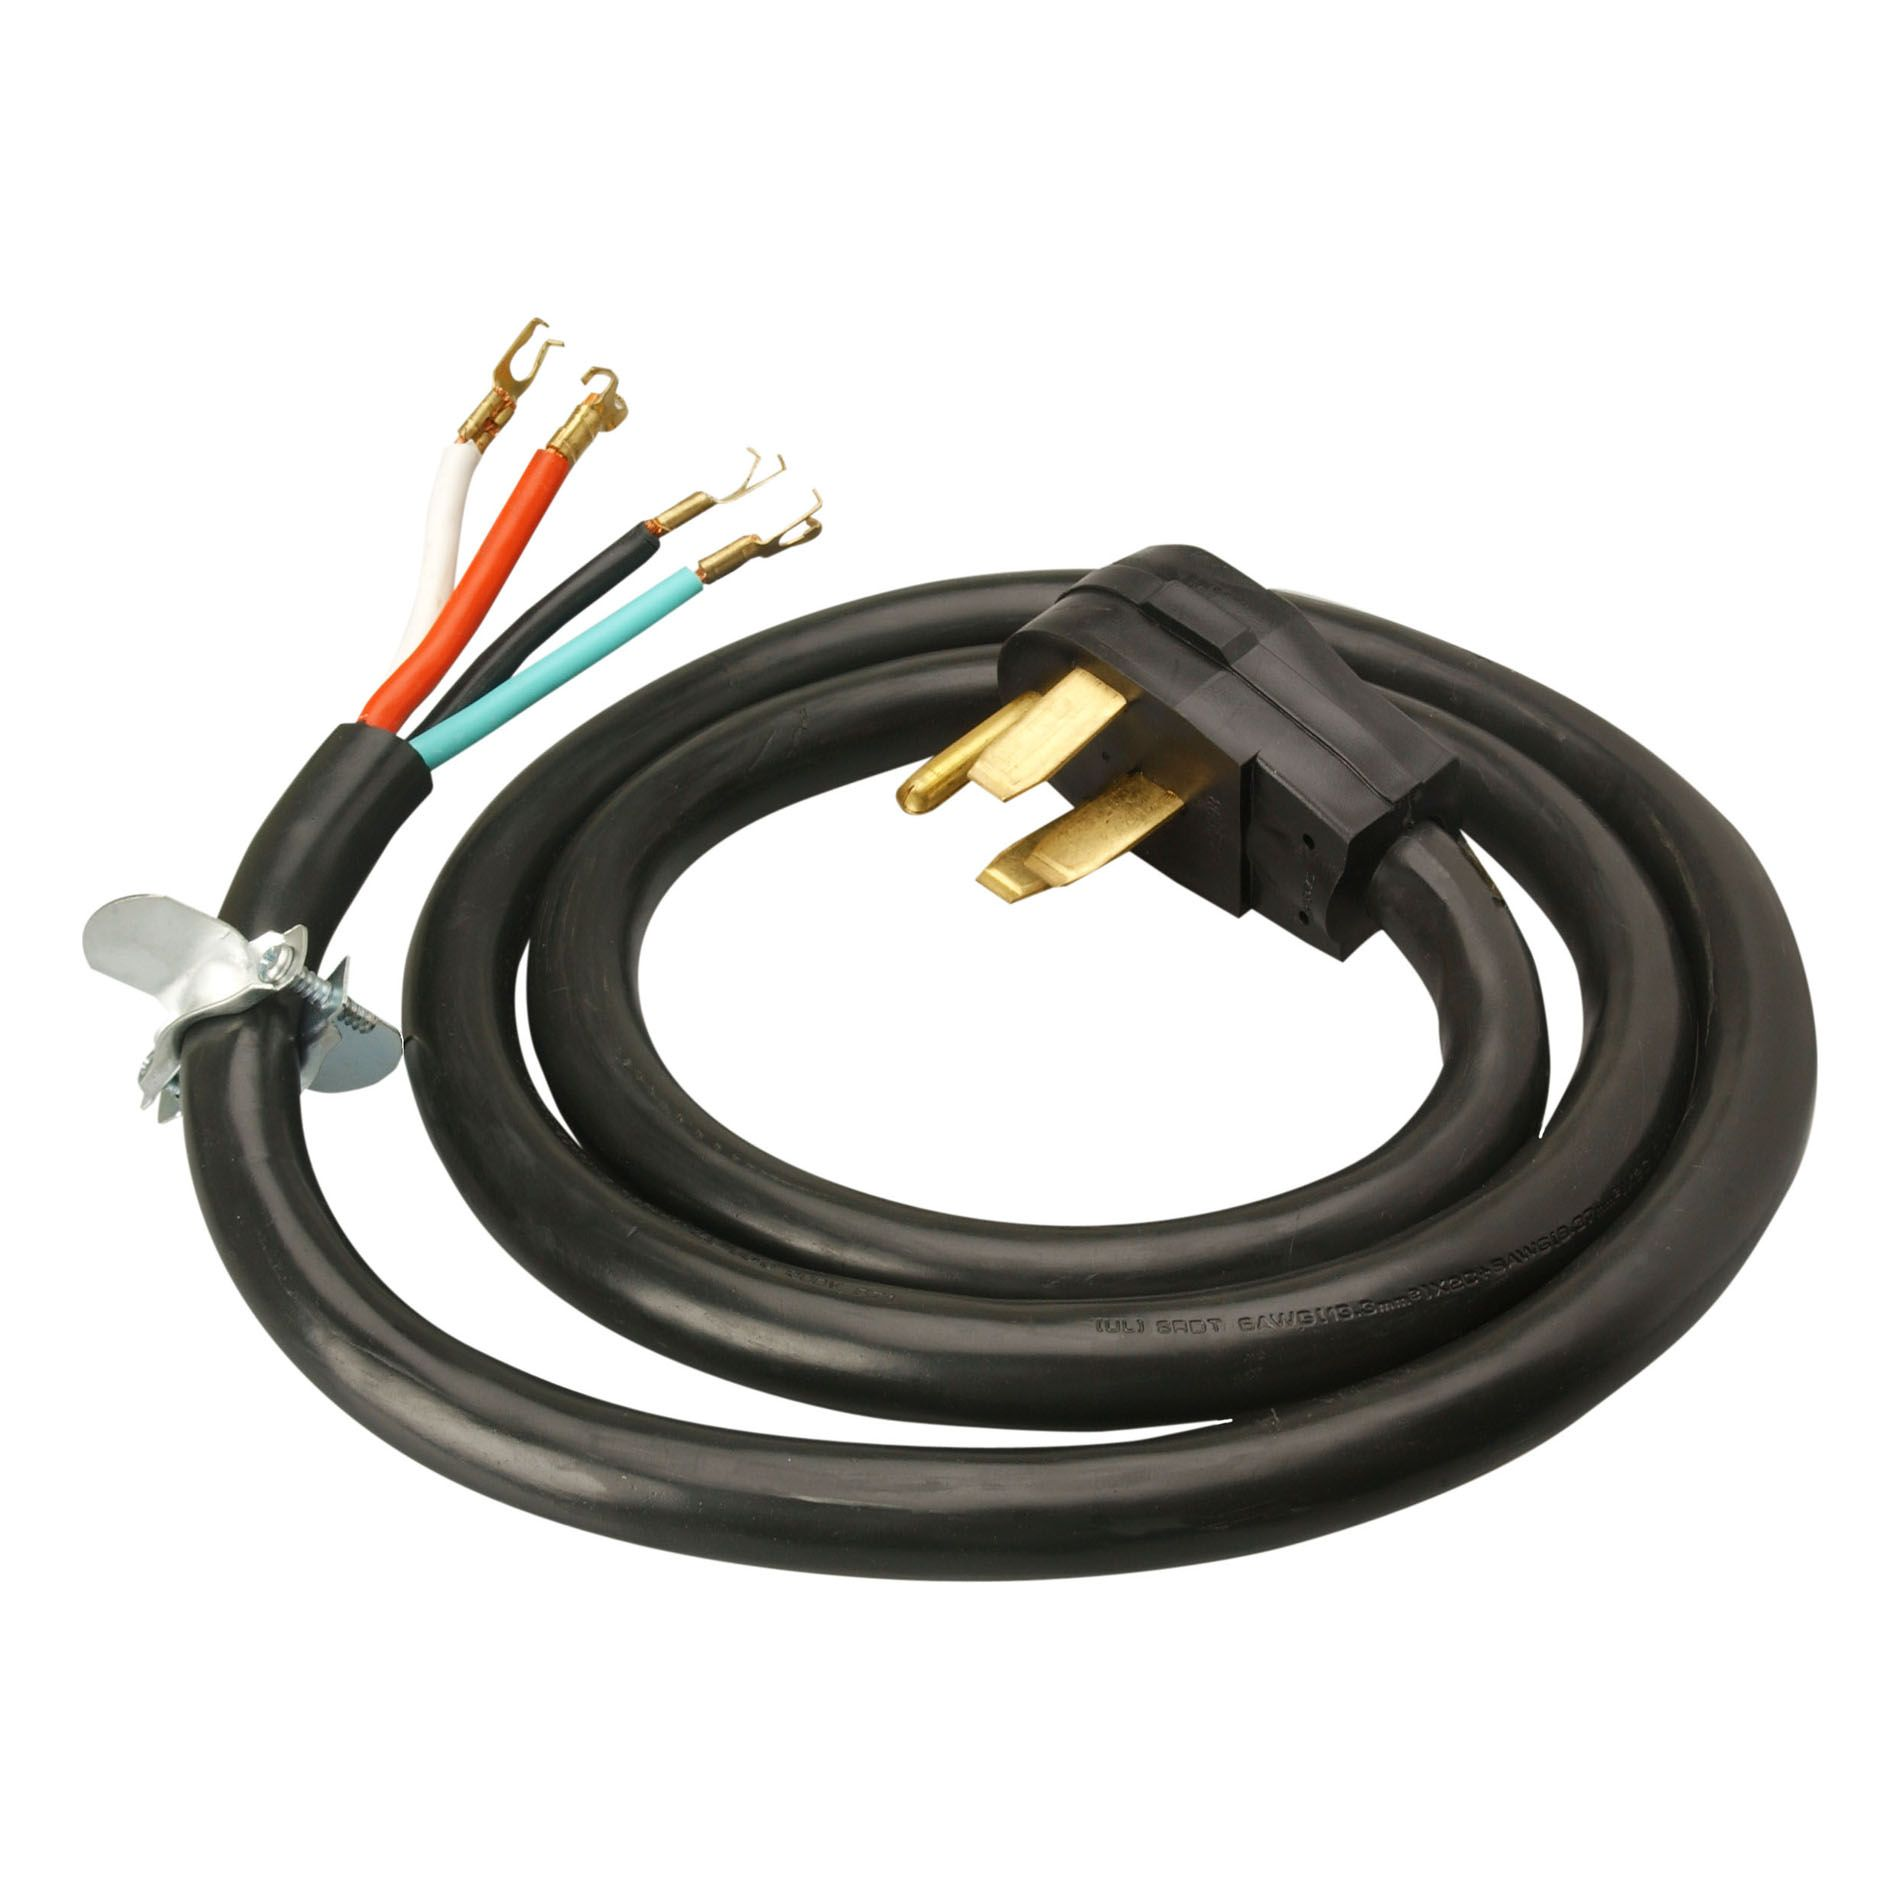 small resolution of electricord 49626 4 wire 6 ft electric range cord sears outlet wire 6 ft electric range cord description 50 amp 4 wire 6 foot range